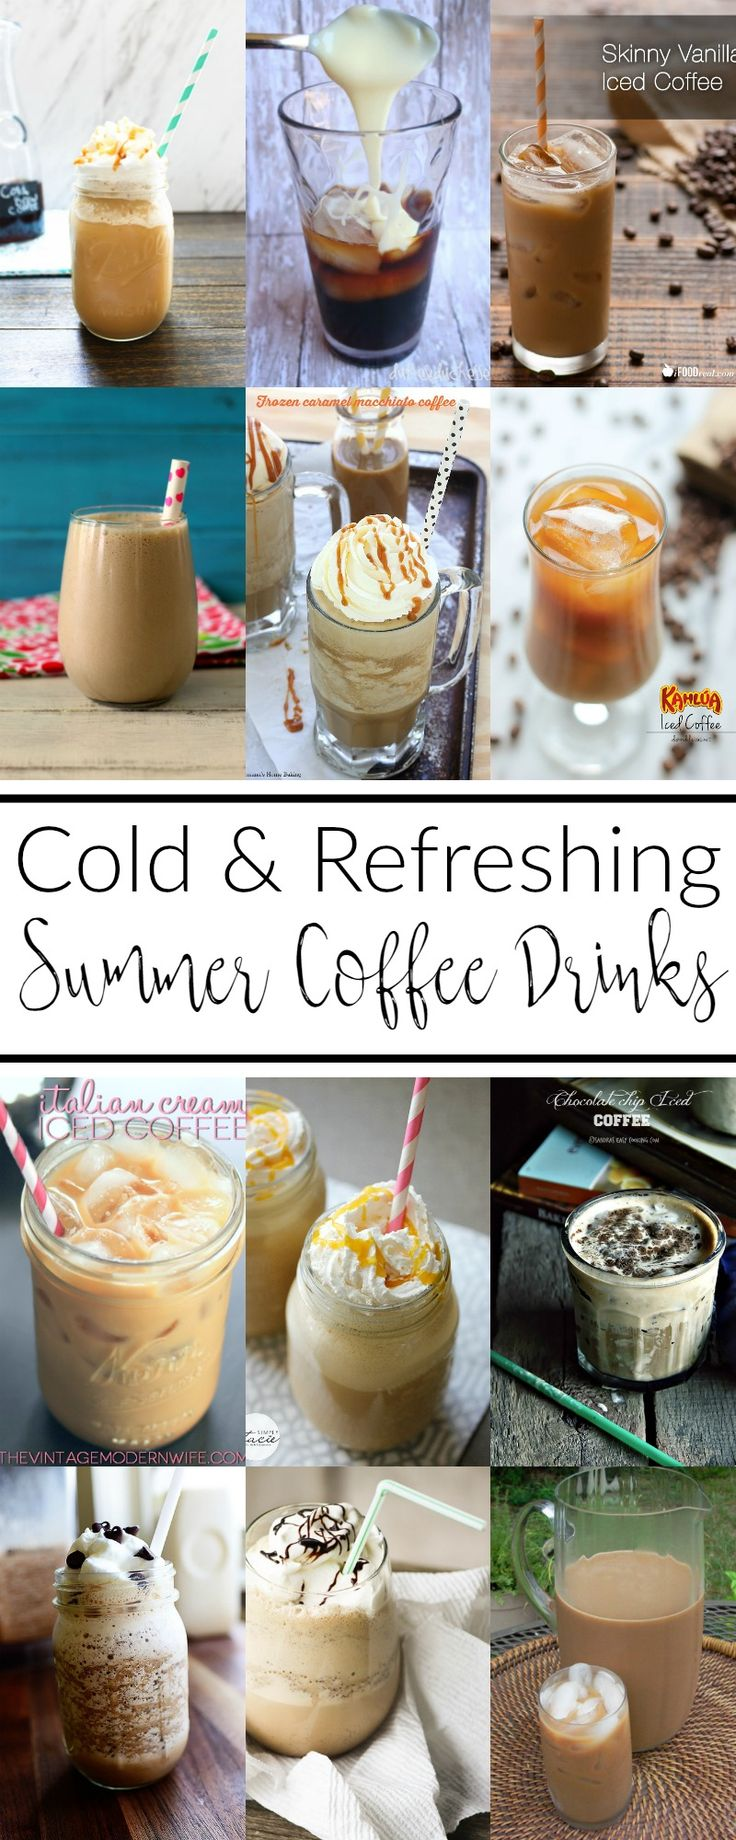 Don't be stuck drinking plain old iced coffee when you can choose from these 12 cold and refreshing summer coffee drinks this season.